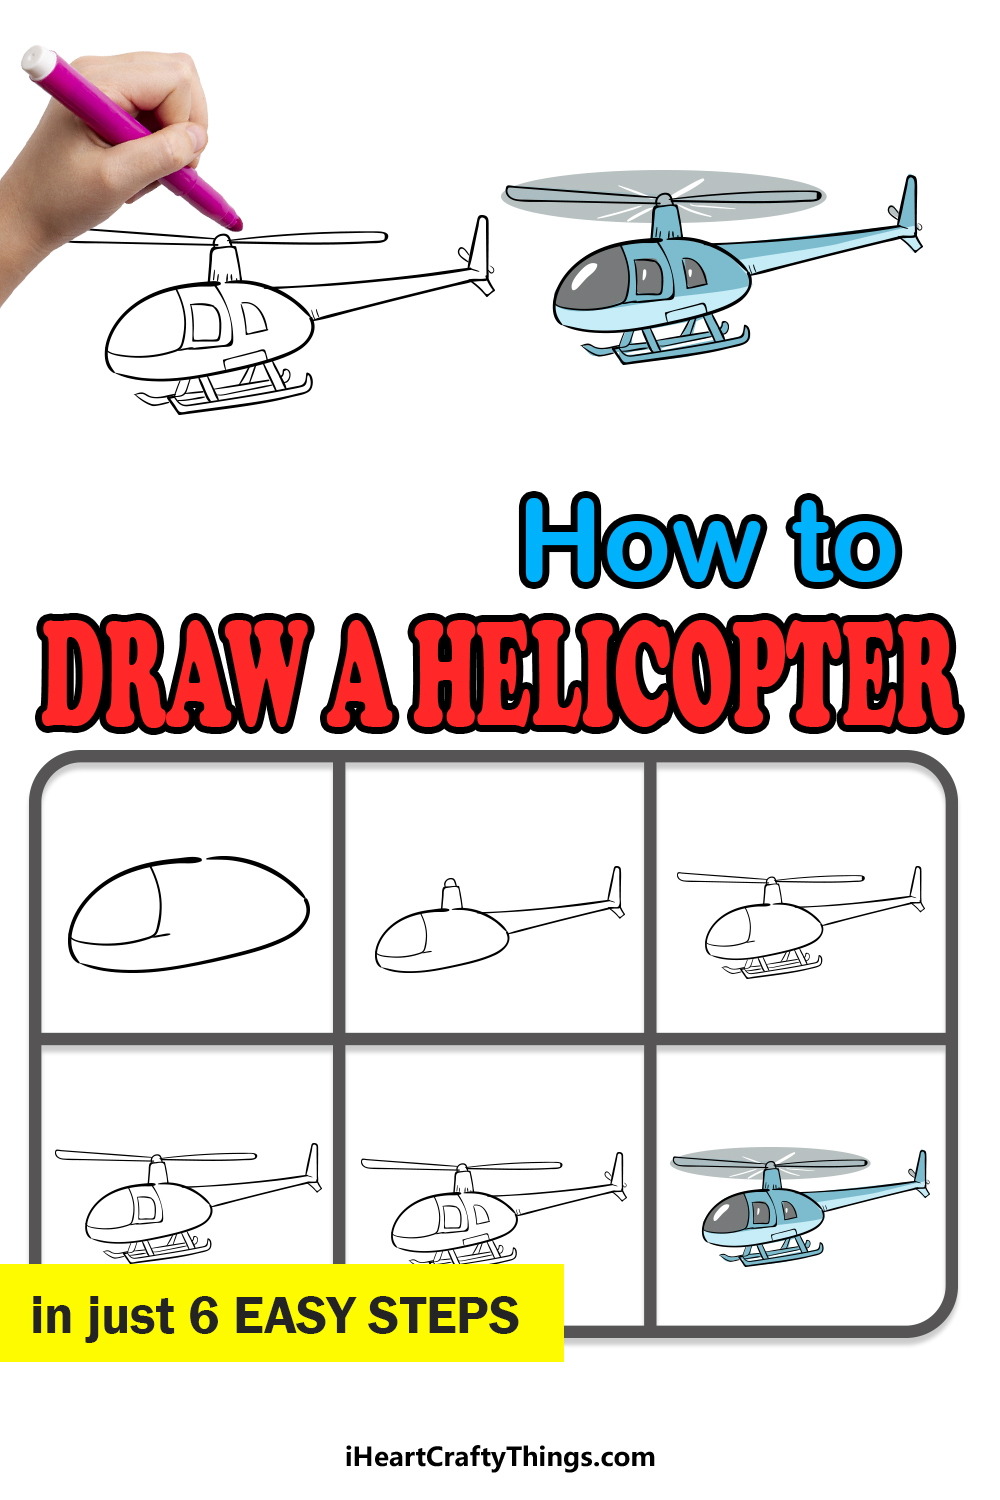 how to draw a helicopter in 6 easy steps